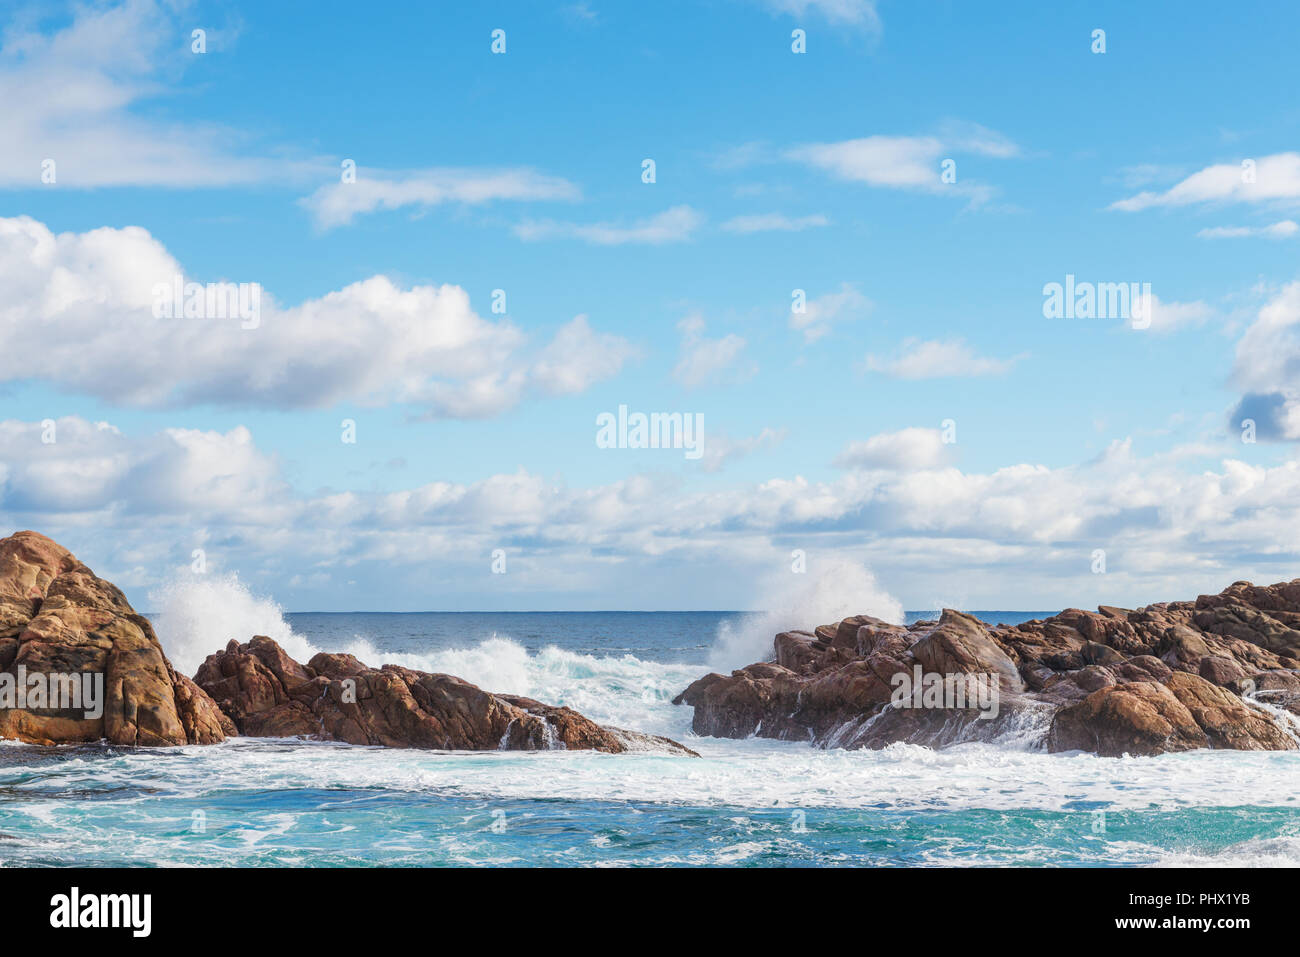 famous rocks in the canal of the coast in Busselton - Stock Image